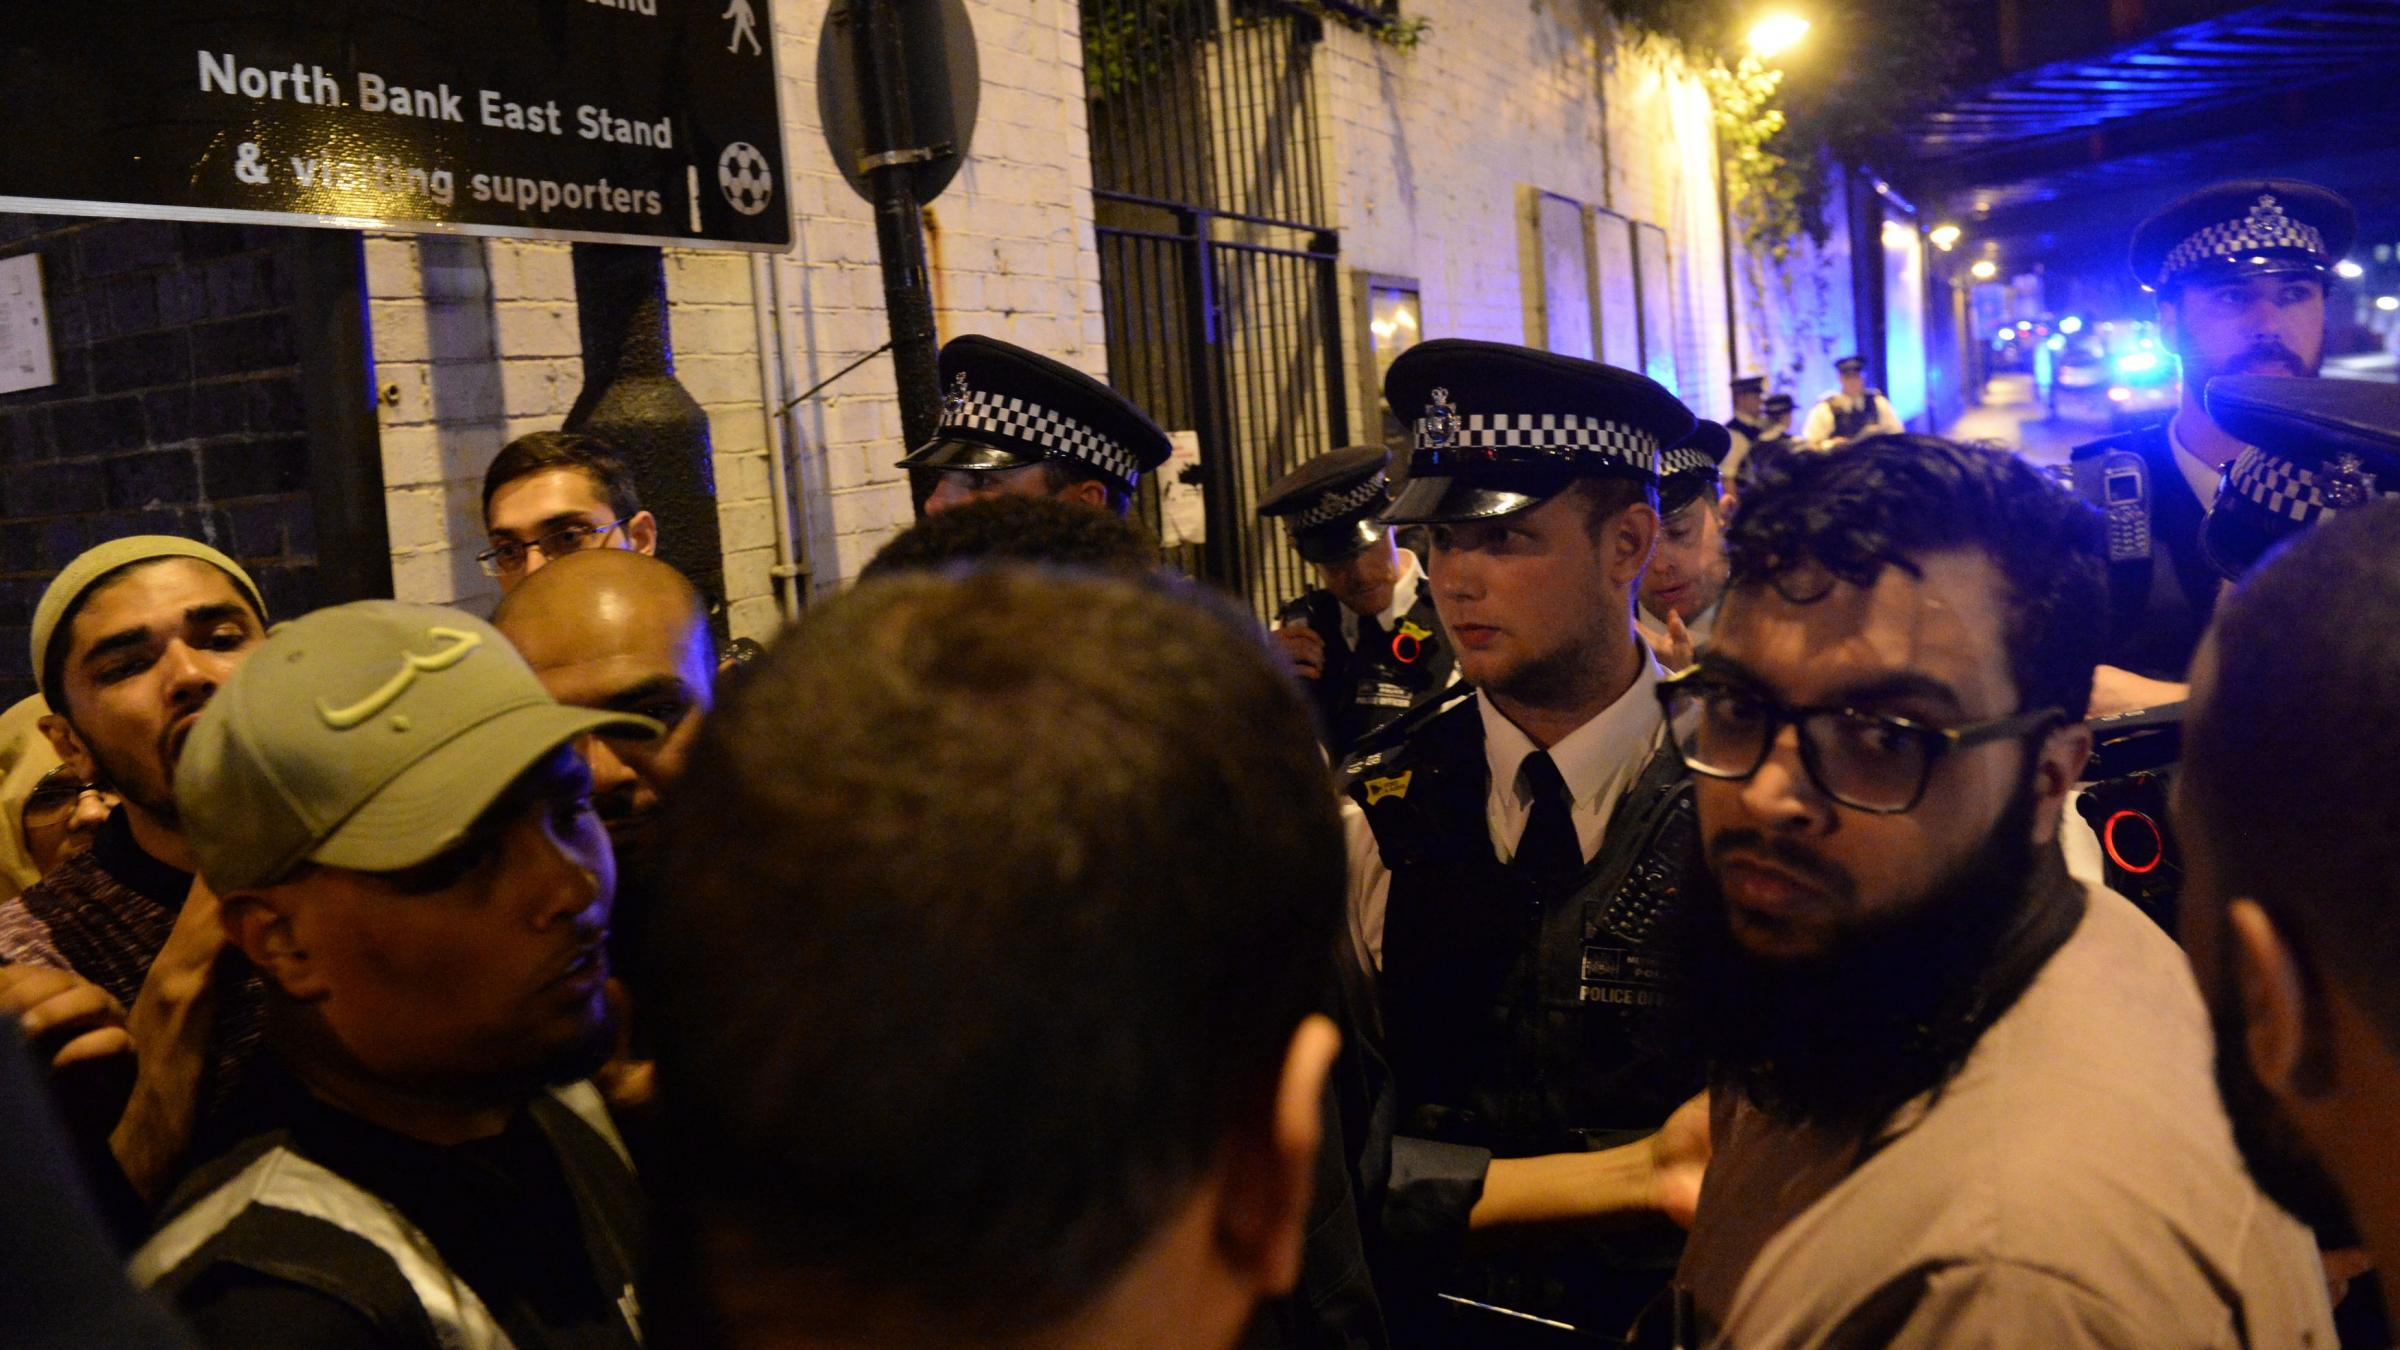 'Totally shocked' by London mosque incident: United Kingdom  opposition leader Jeremy Corbyn